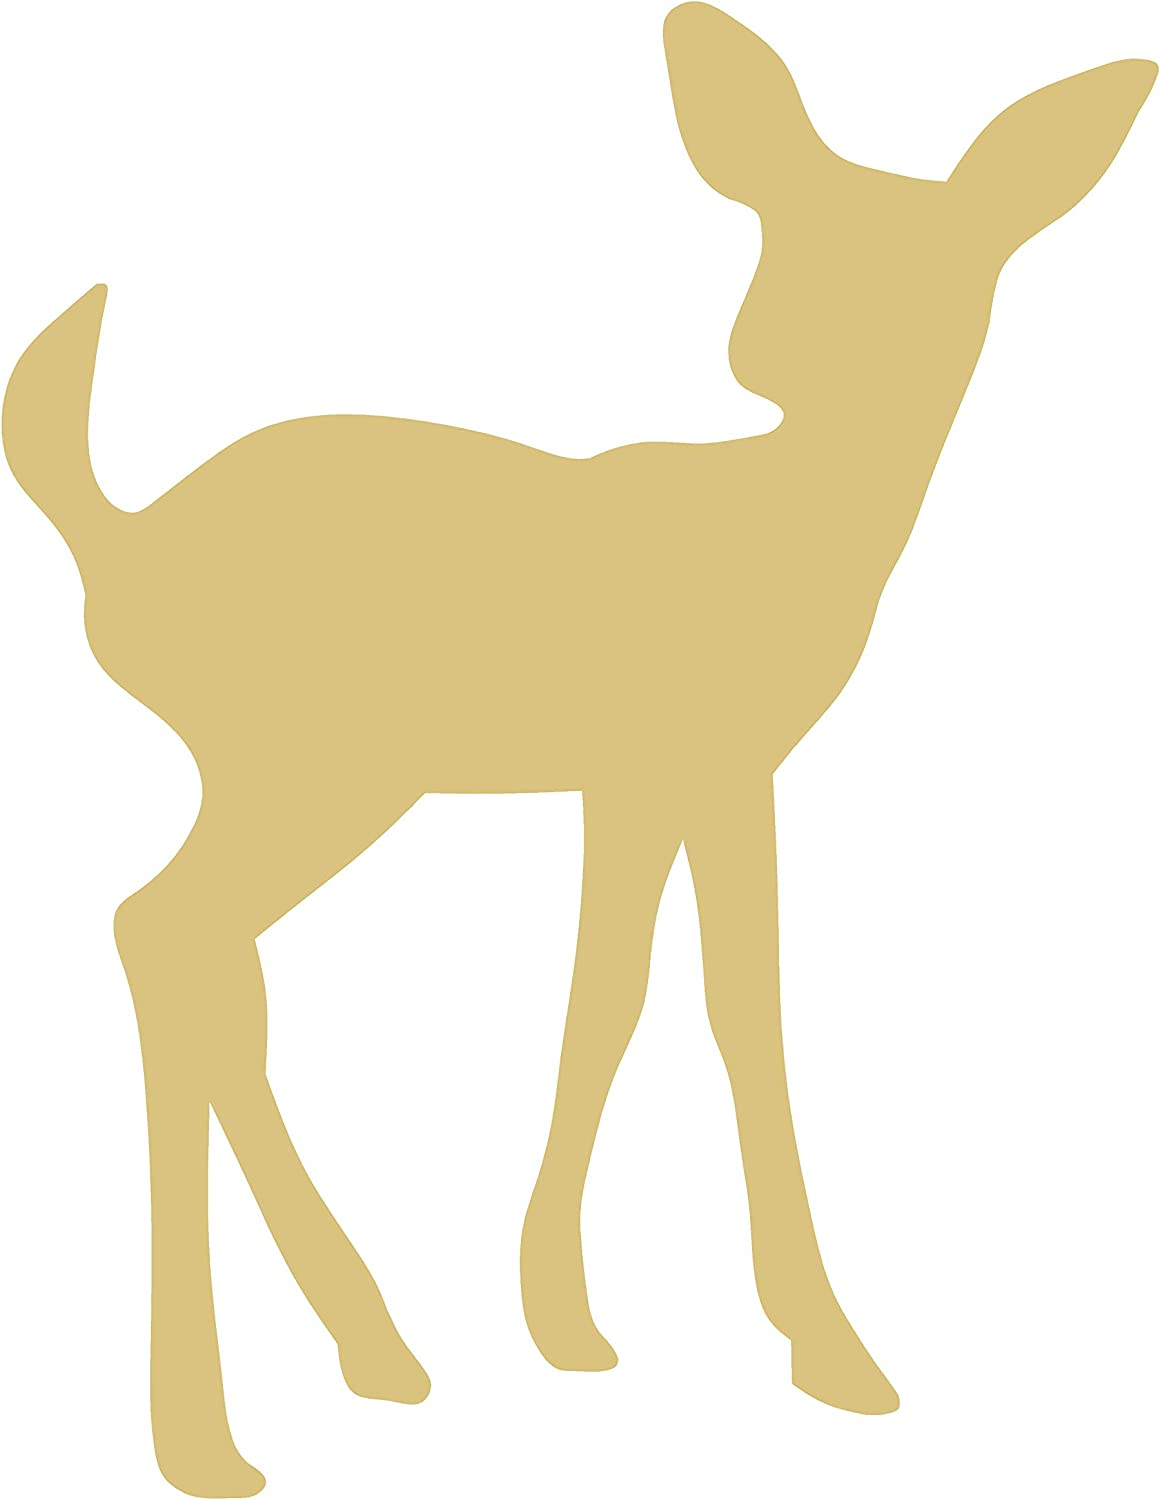 Deer Cutout Unfinished Weekly update Wood Antlers Reindeer Max 59% OFF Caribou Forest Anim